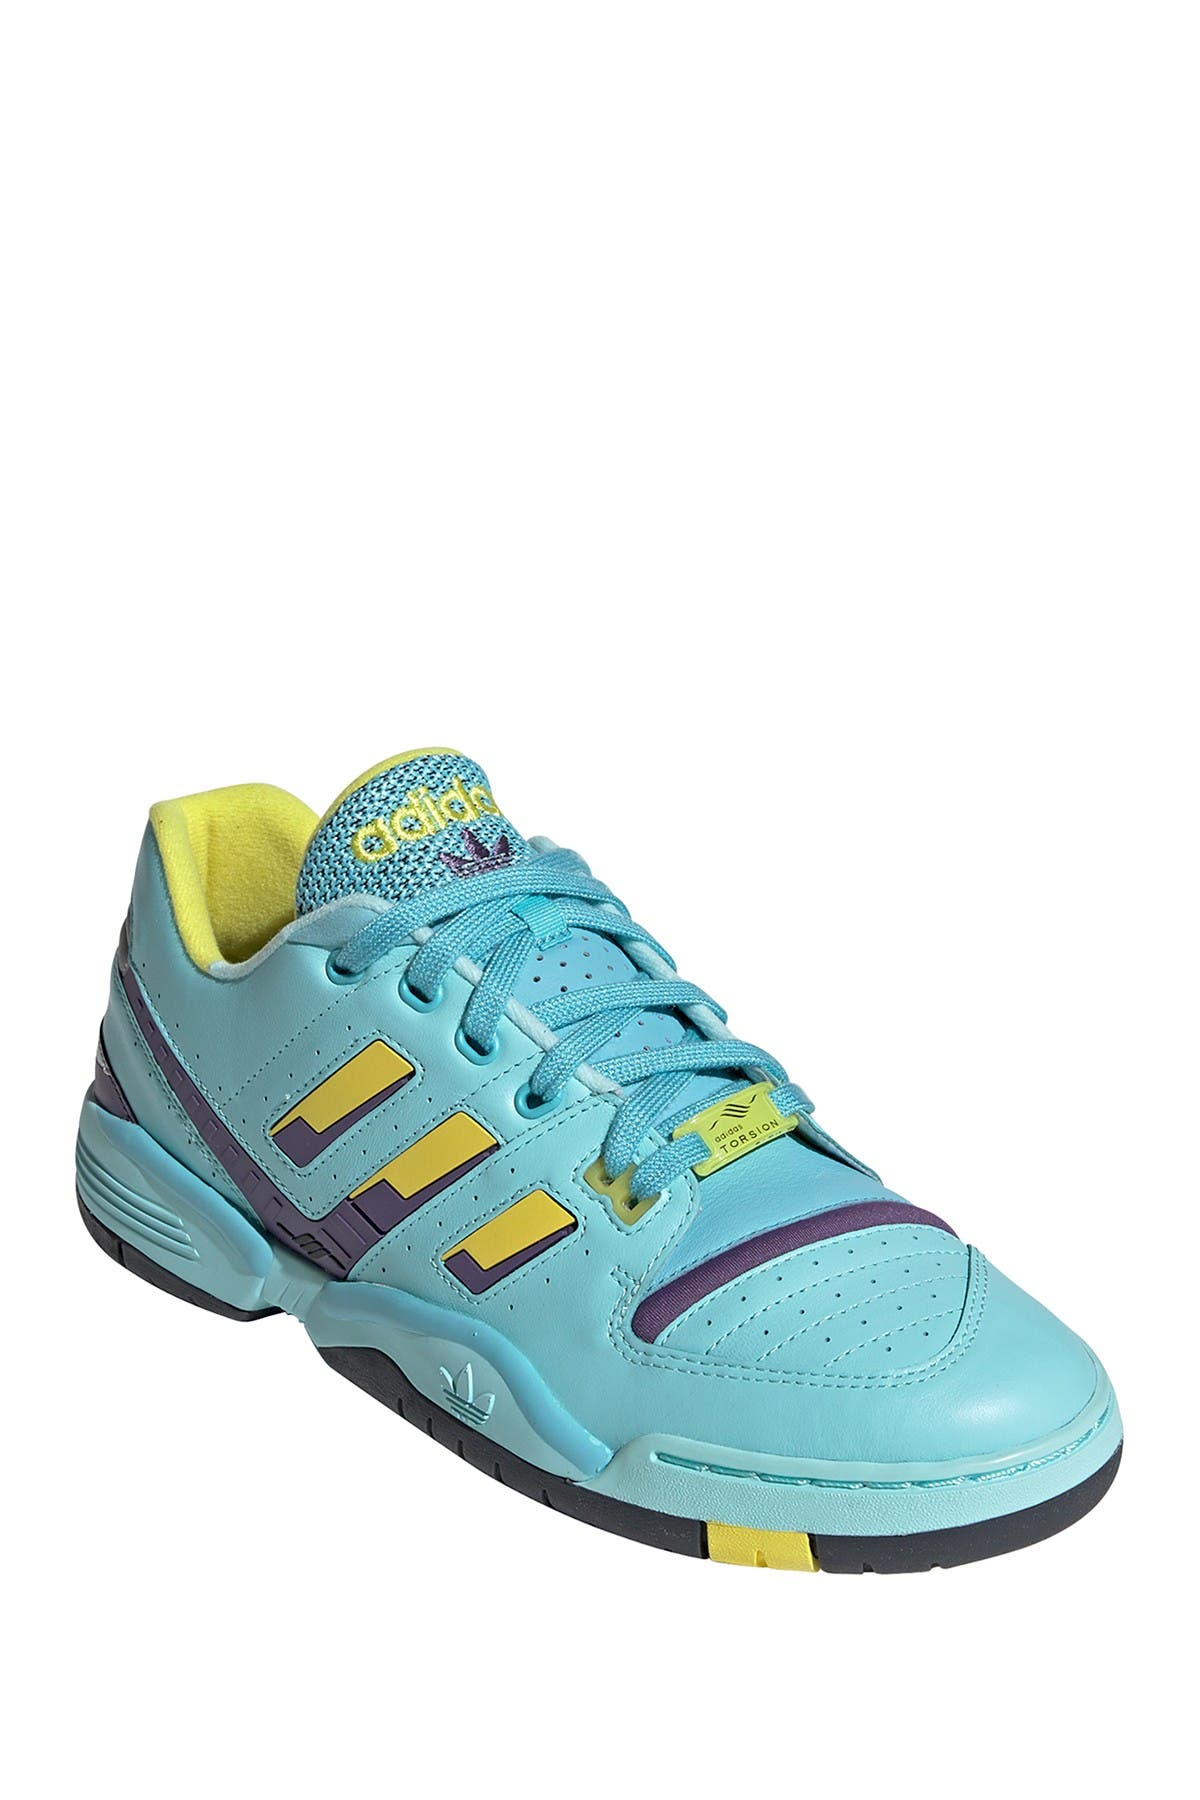 Image of adidas Torsion Comp Sneaker